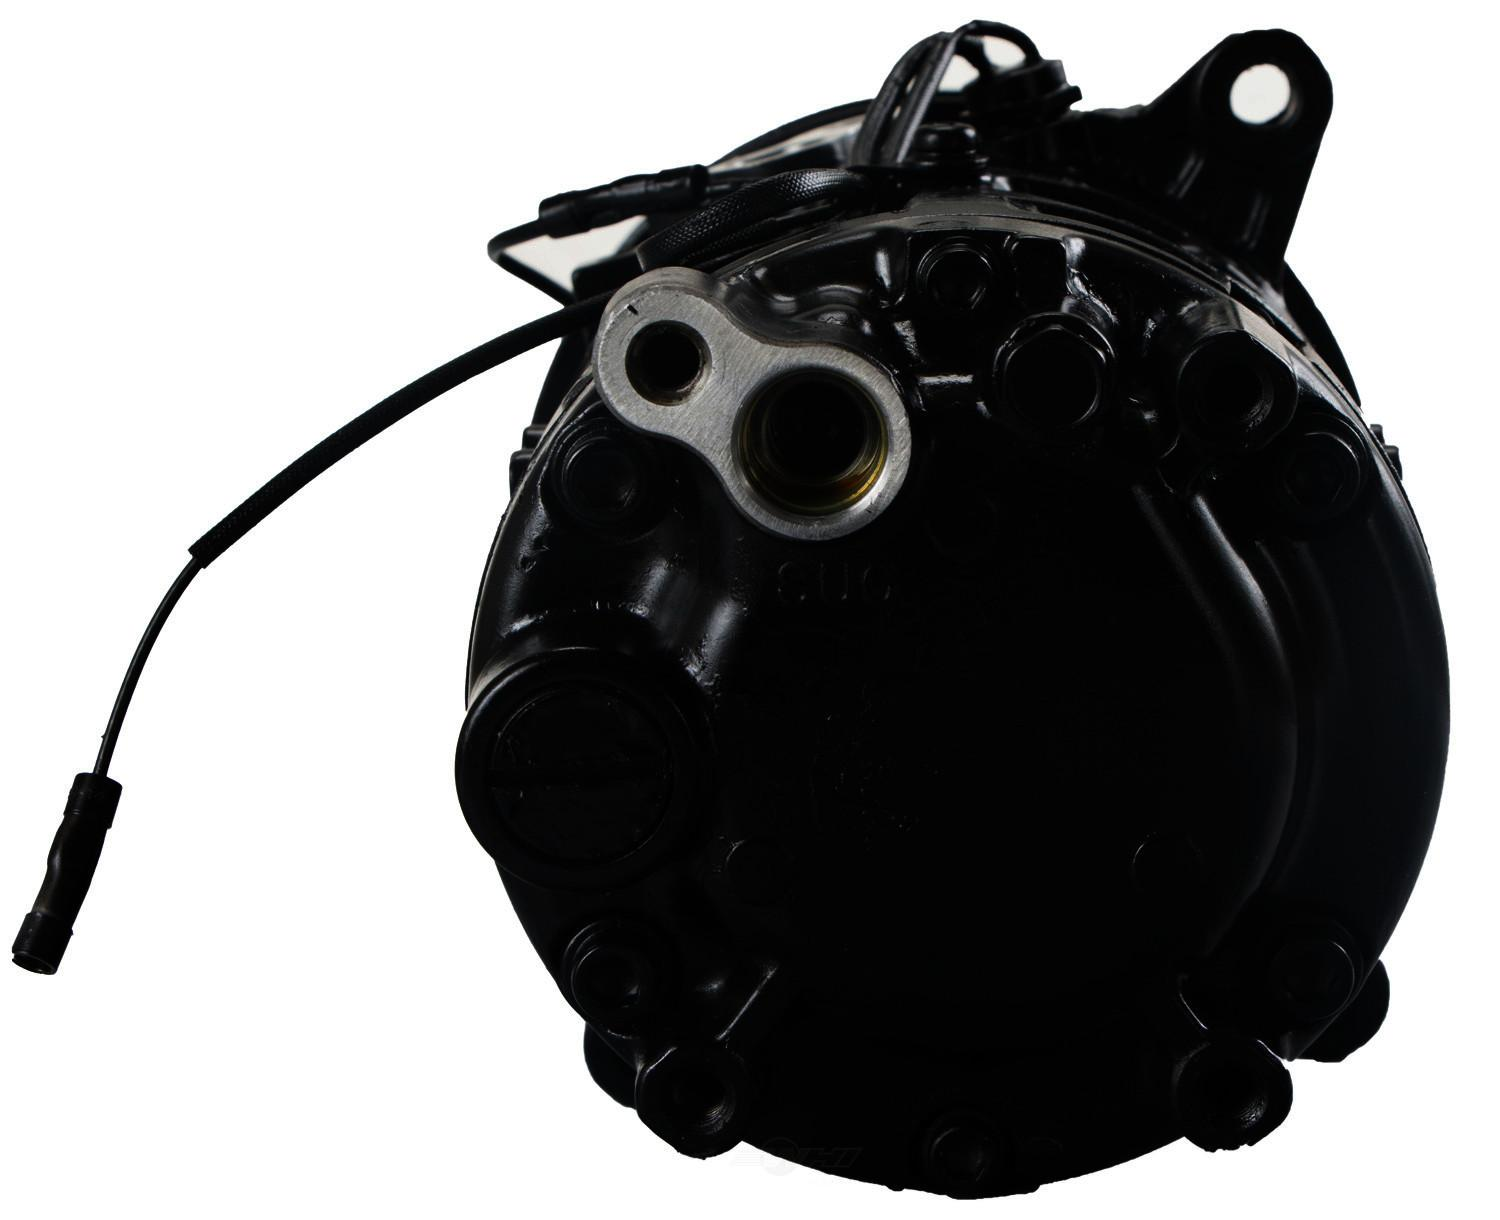 ACDELCO PROFESSIONAL - Reman A/C Compressor - DCC 15-20590